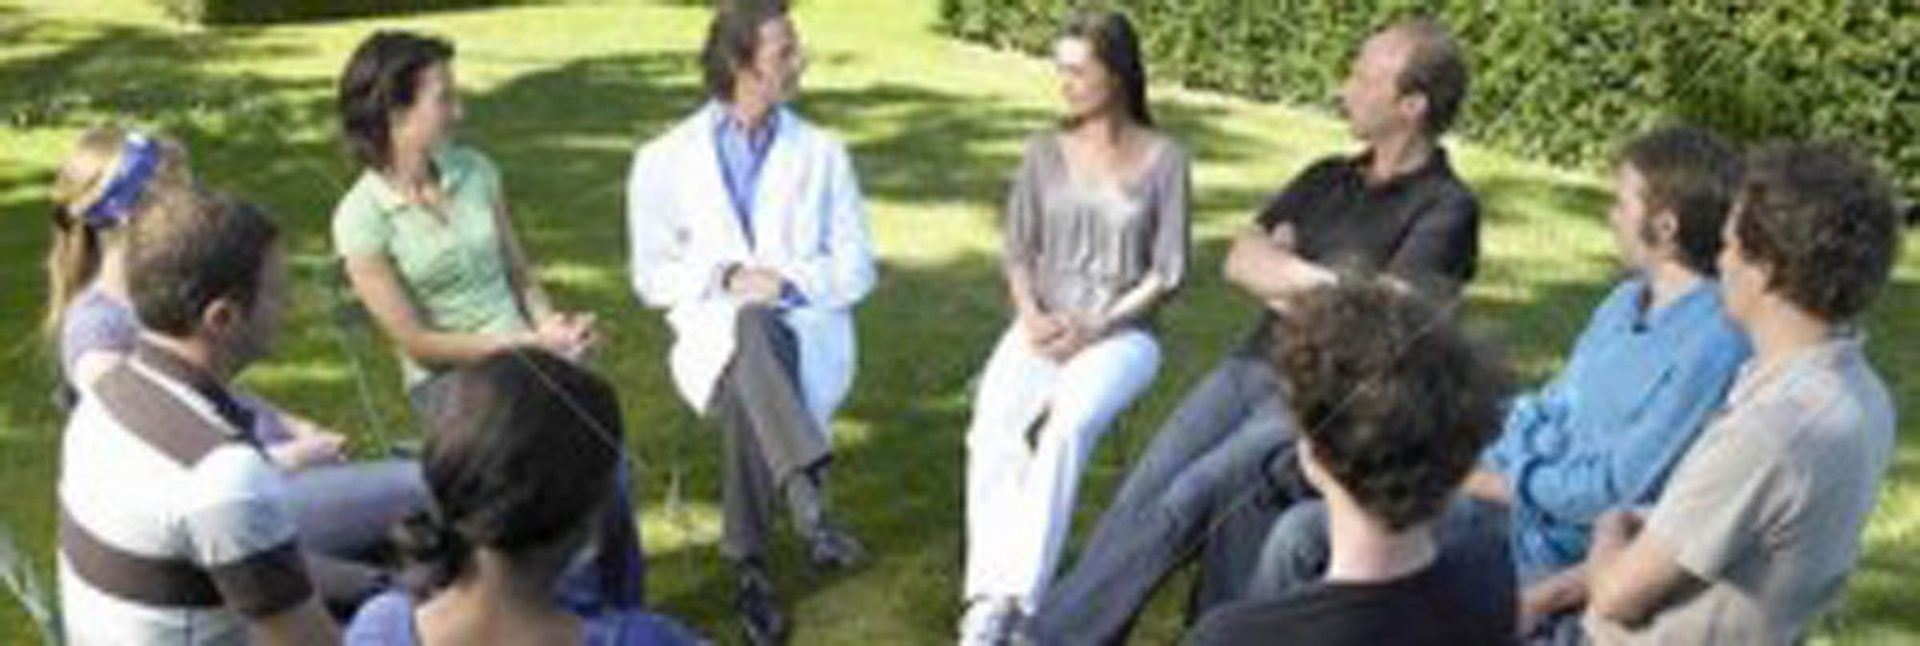 Group of people in a therapy session outside